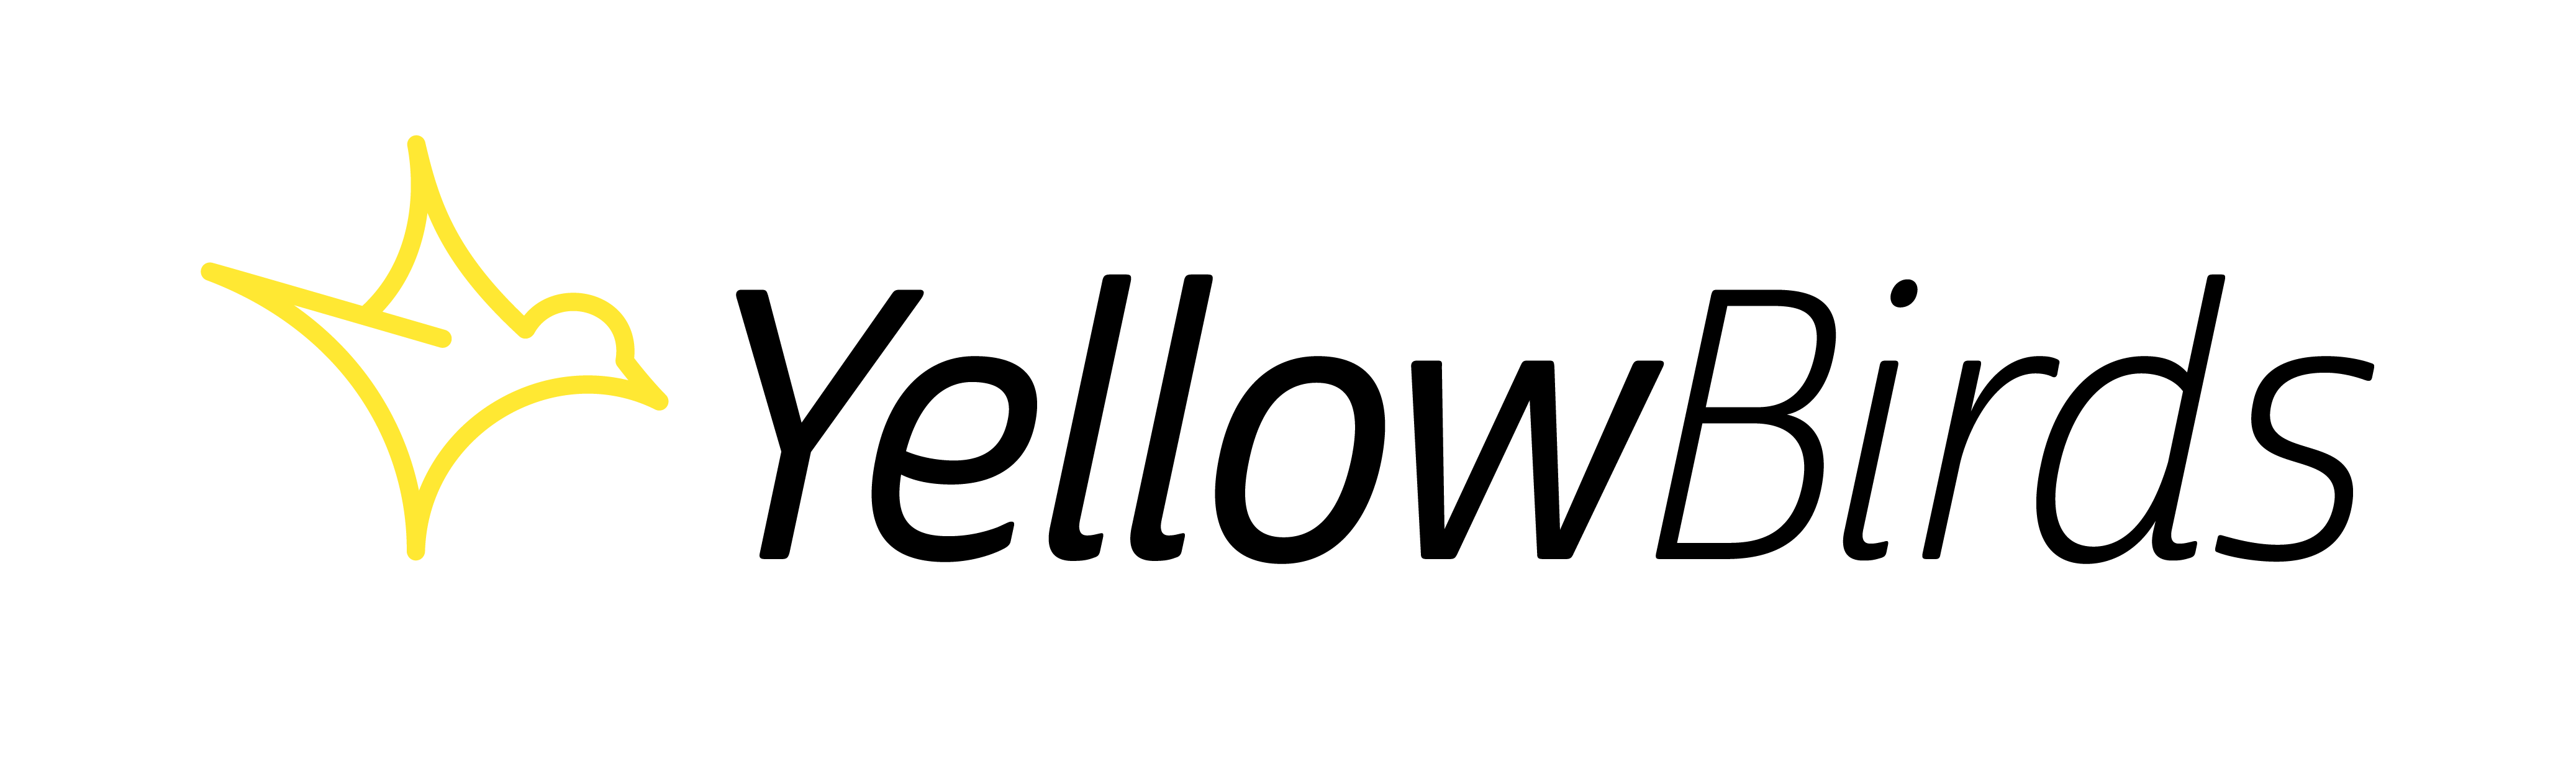 YellowBirds Consulting